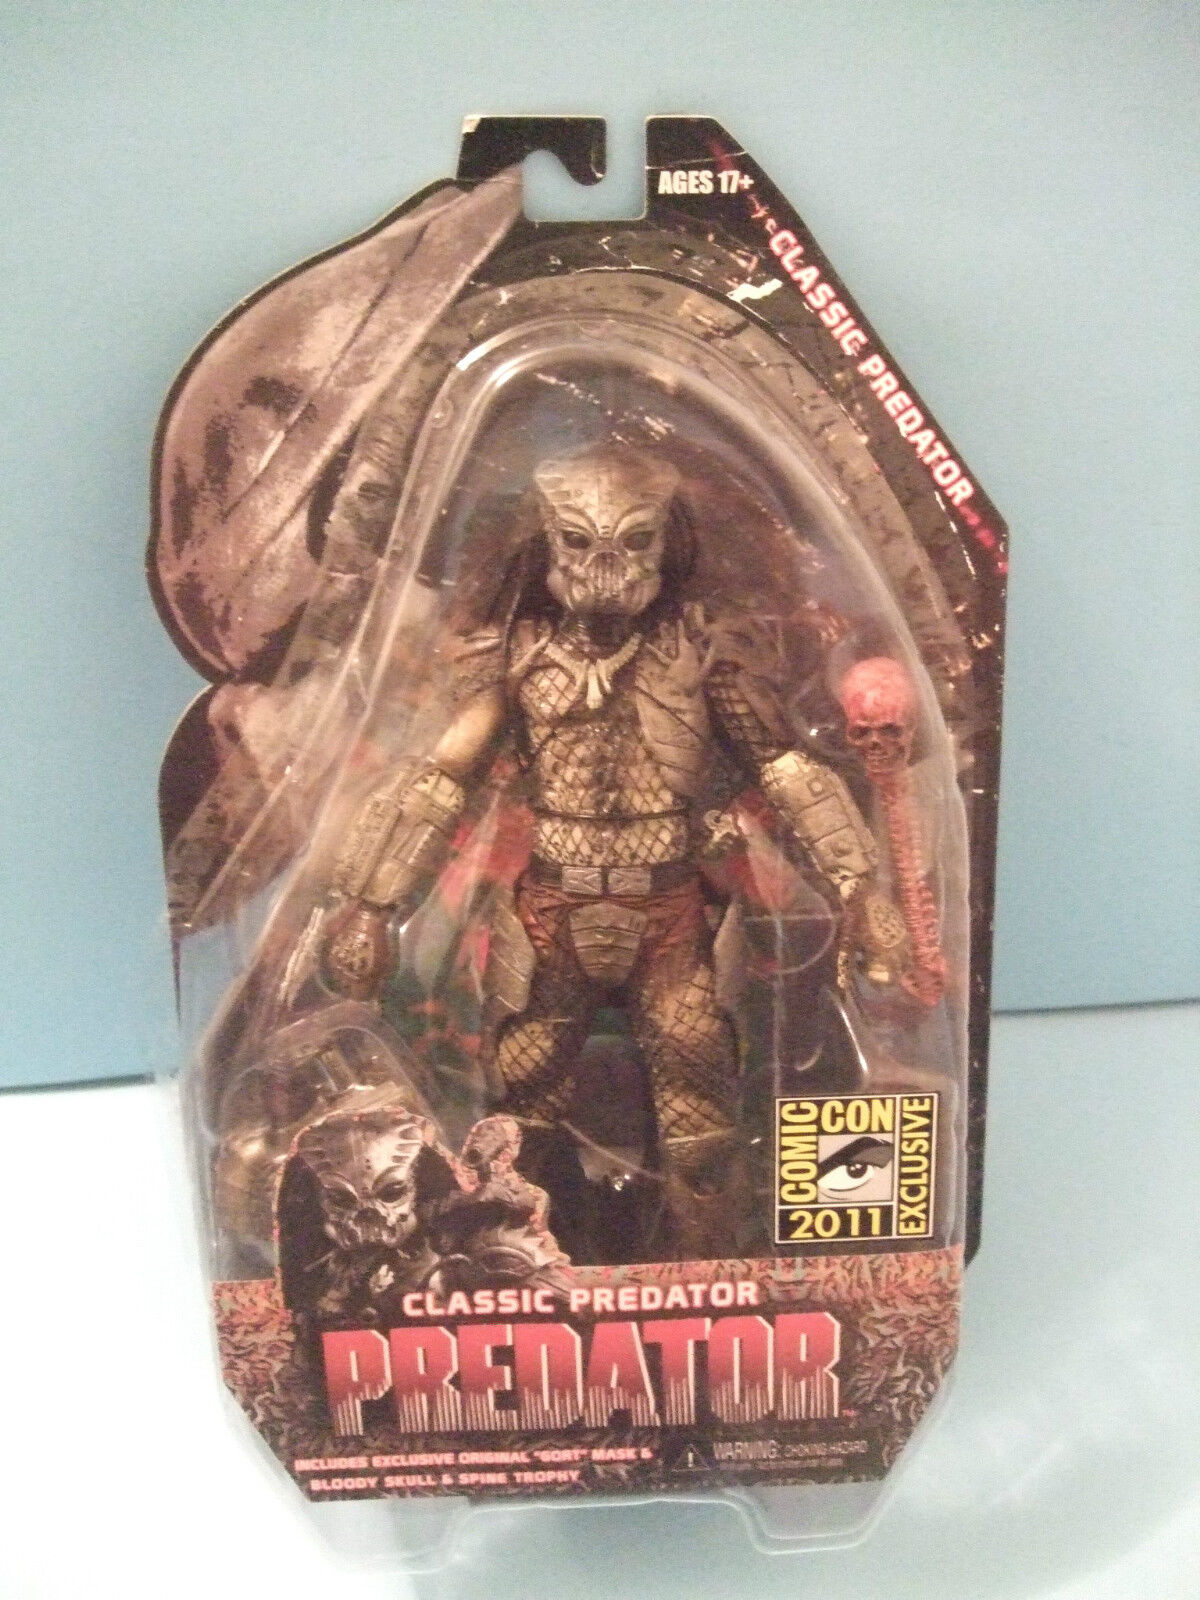 Classic Predator in Gort Mask Figure 2011 SDCC Exclusive  by Neca